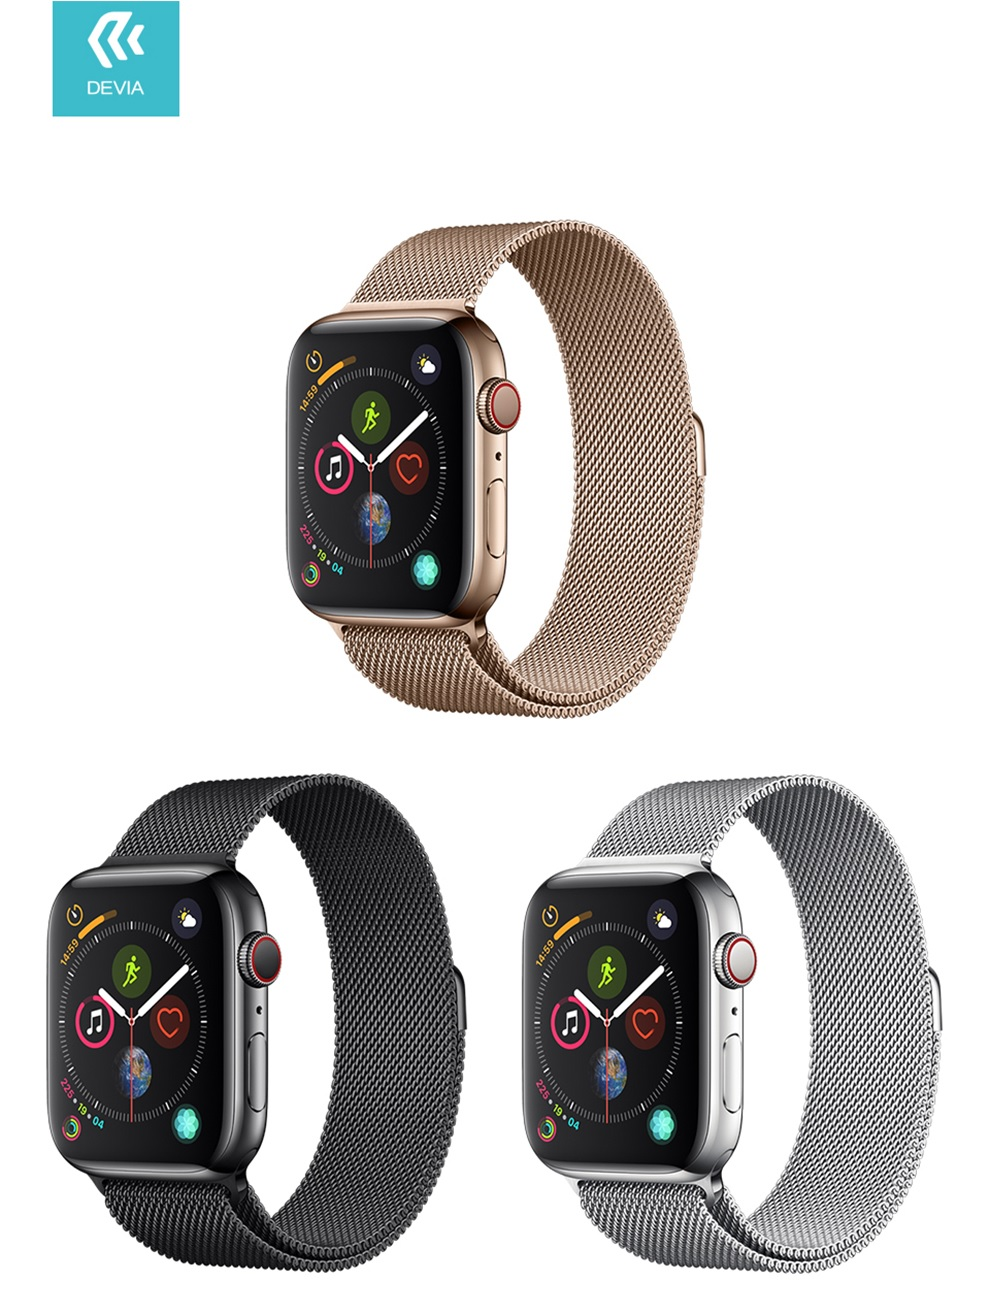 This premium A brand watch strap, suitable for the Apple Watch / Apple iWatch, The Devia strap is strong and good. A quality product. This watch strap is made of high-quality metal and sturdy material. You simply install the strap by sliding it into your Apple Watch and then it is well secured.